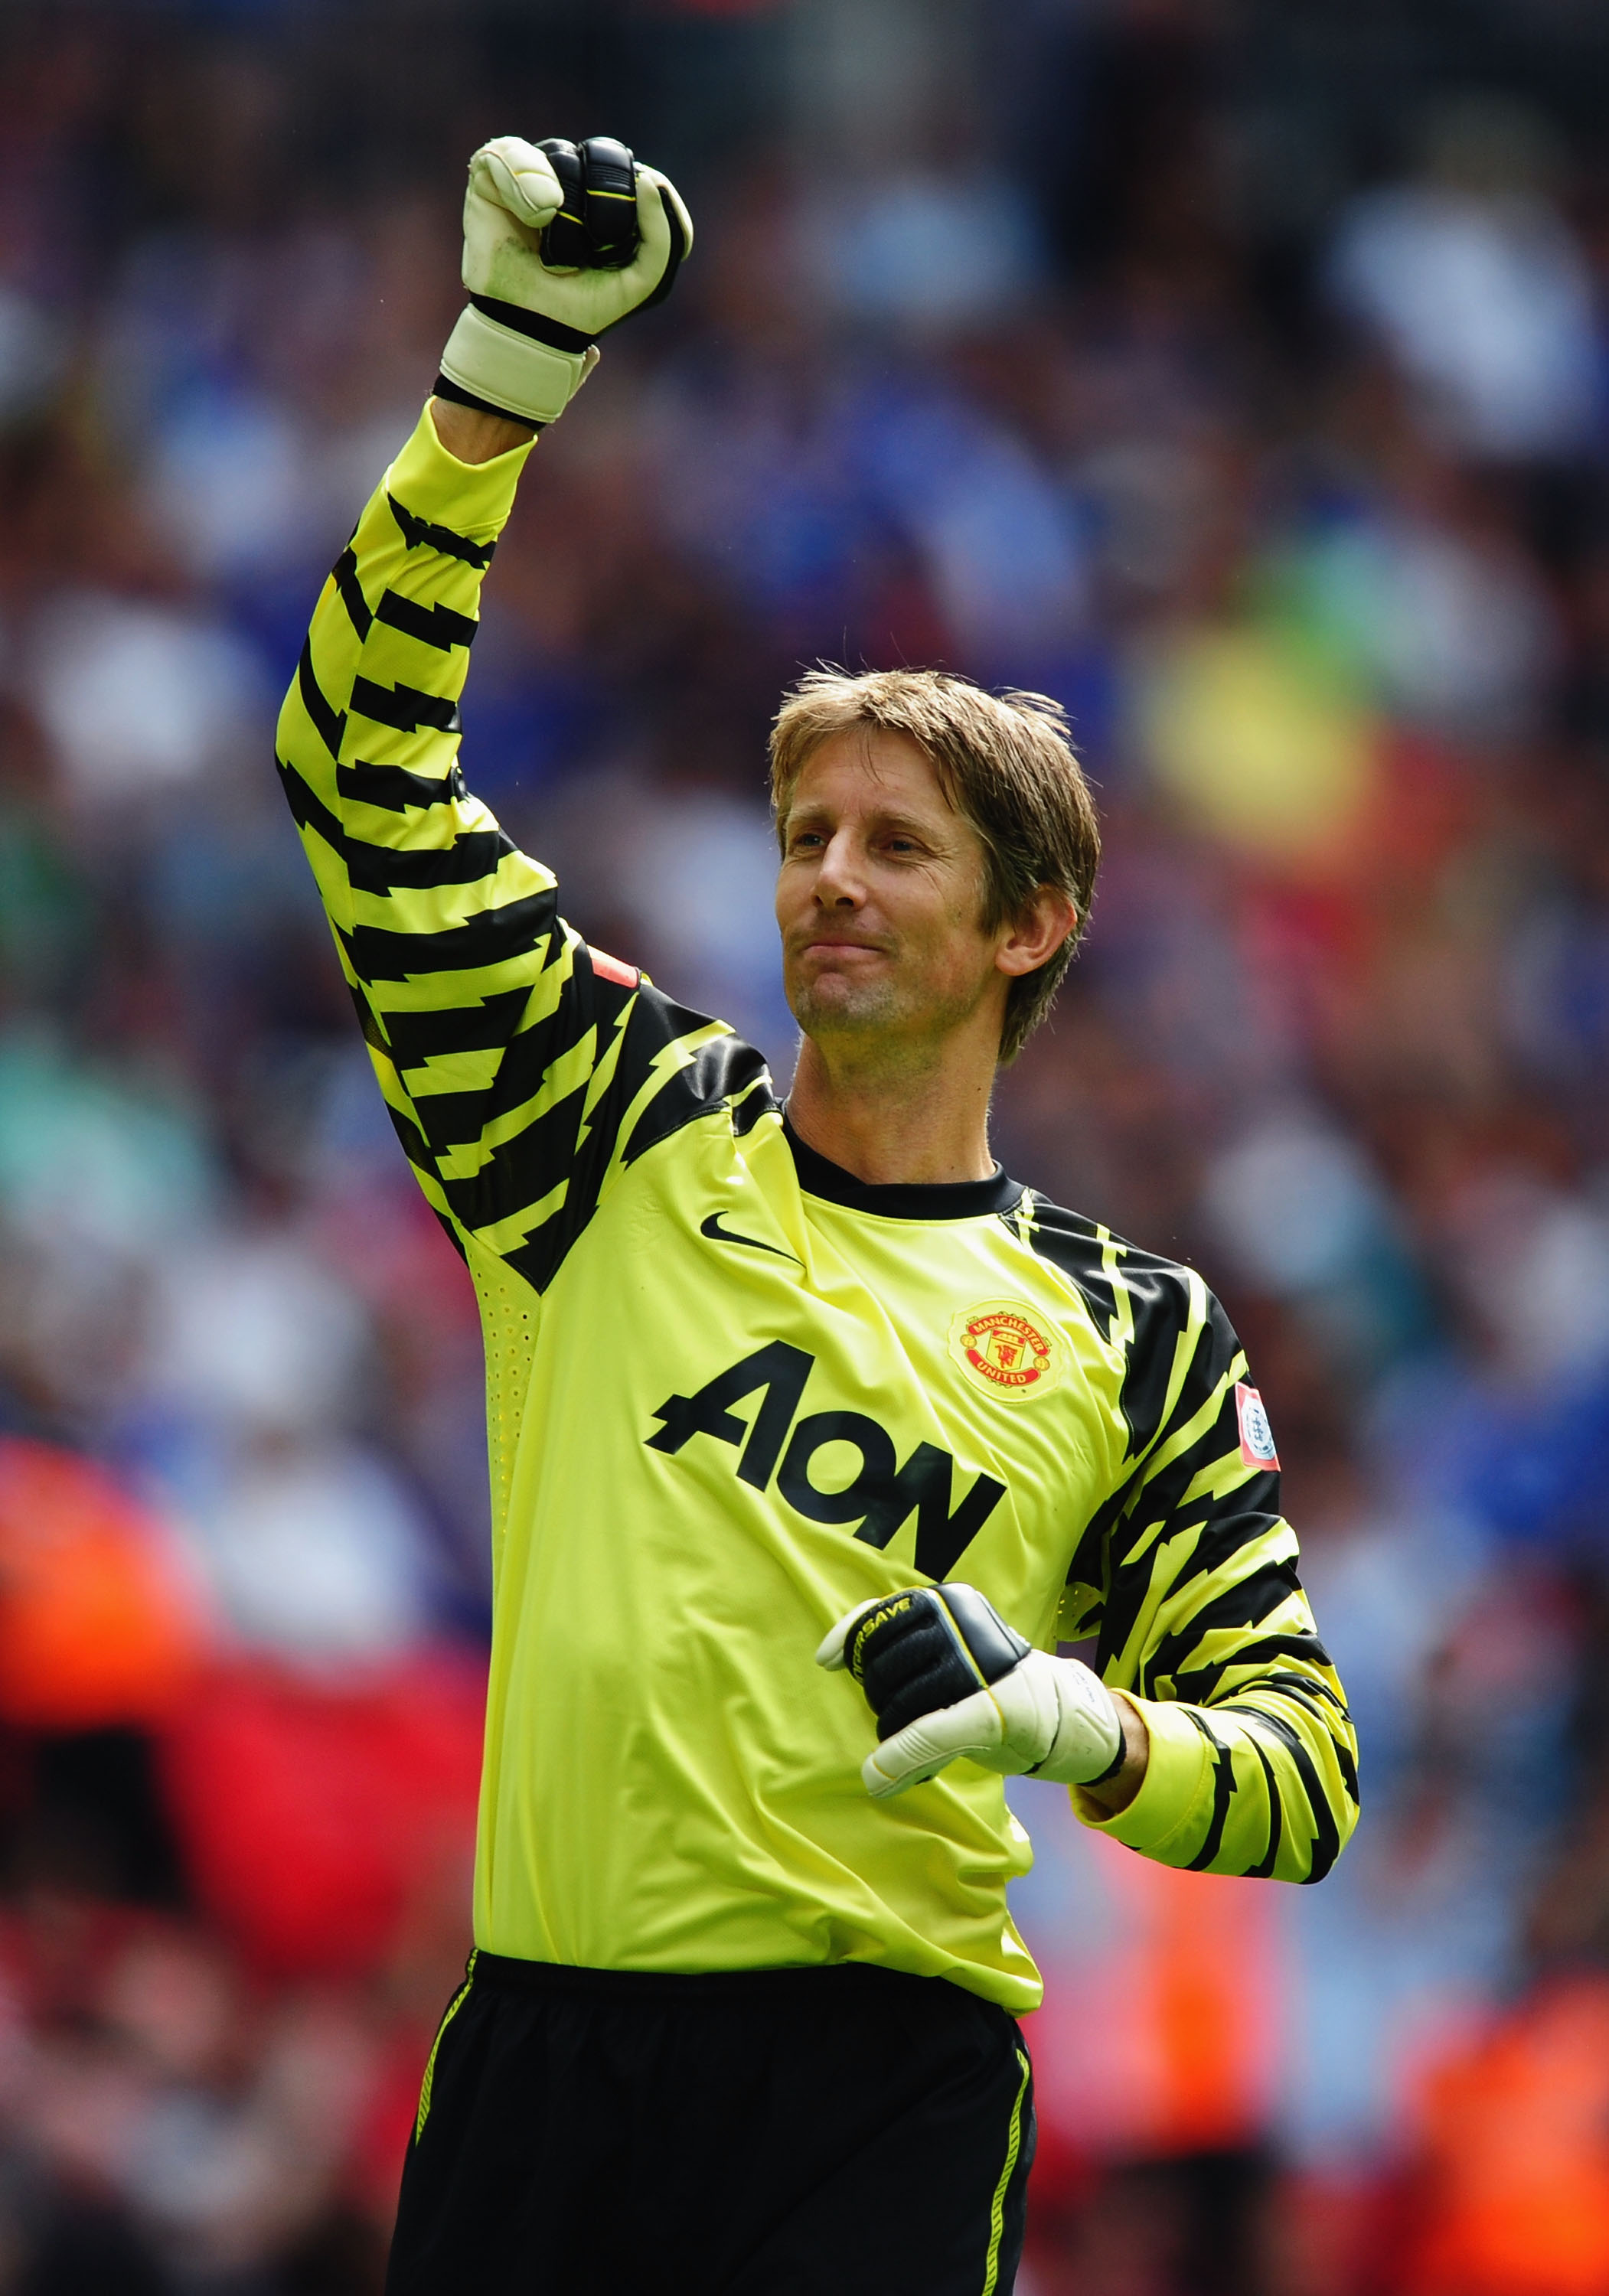 LONDON, ENGLAND - AUGUST 08:  Edwin Van der Sar of Manchester United celebrates the opening goal by Antonio Valencia during the FA Community Shield match between Chelsea and Manchester United at Wembley Stadium on August 8, 2010 in London, England.  (Phot